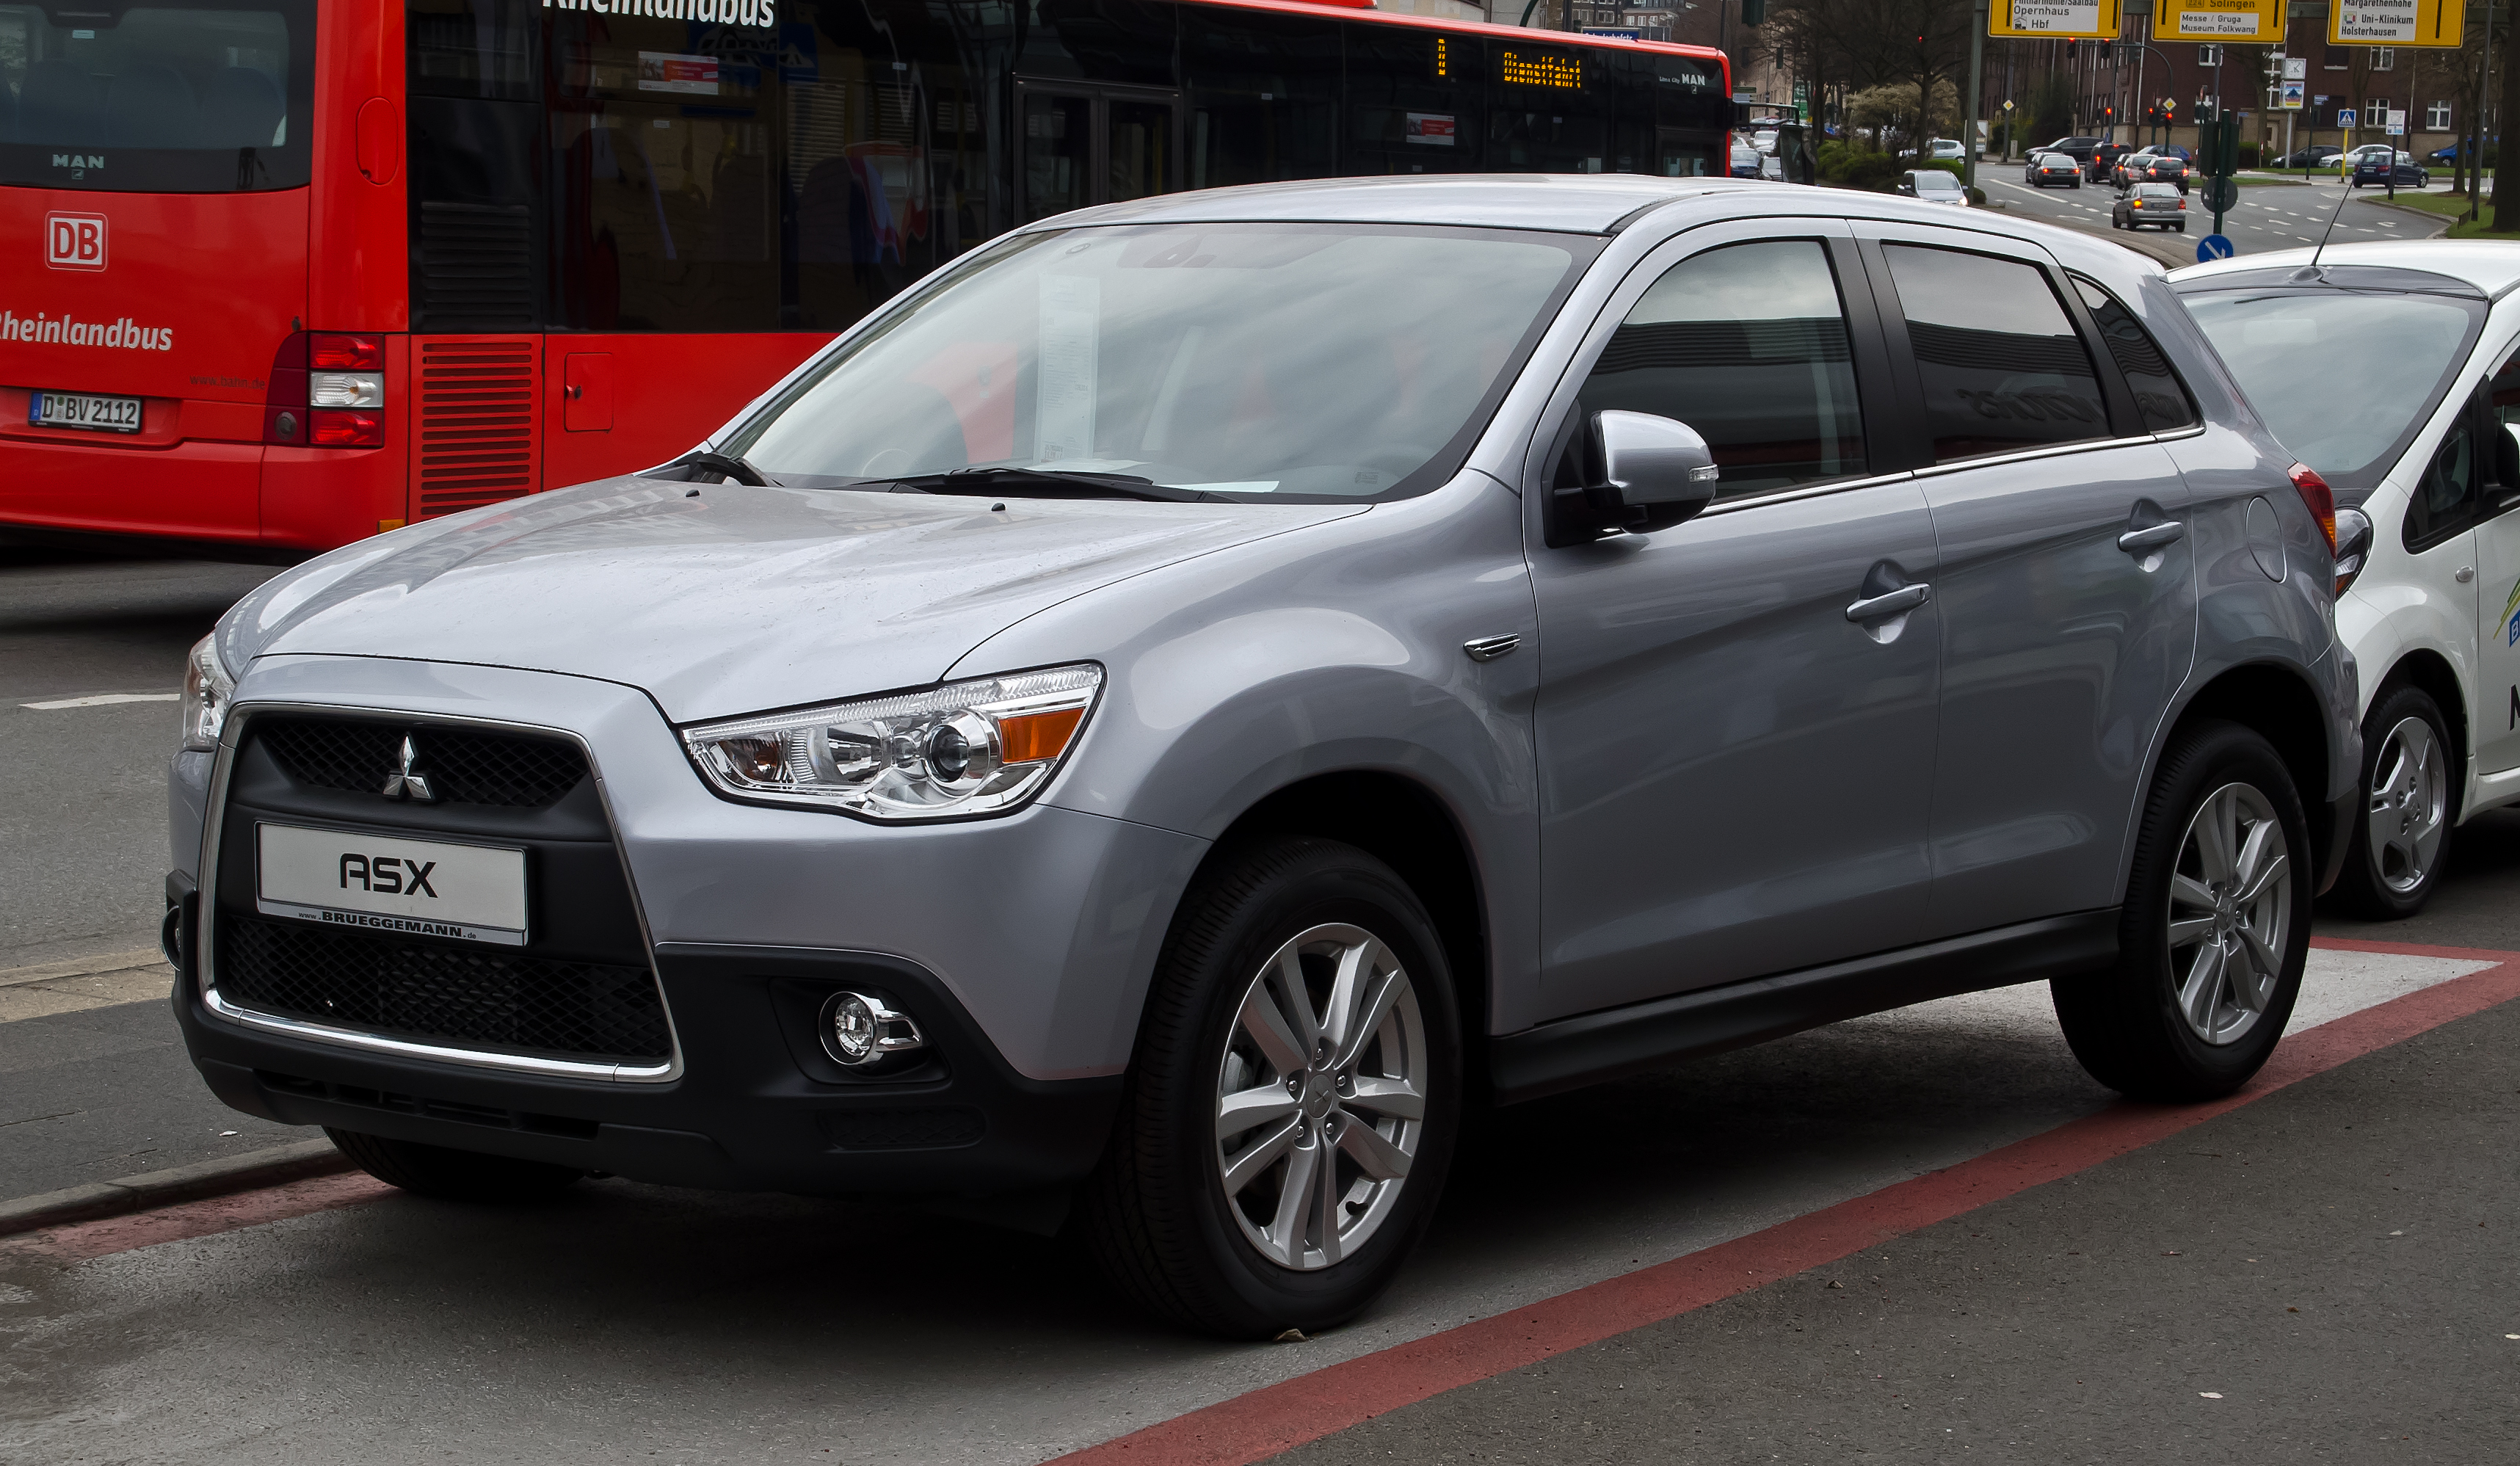 2010 mitsubishi asx pictures information and specs. Black Bedroom Furniture Sets. Home Design Ideas